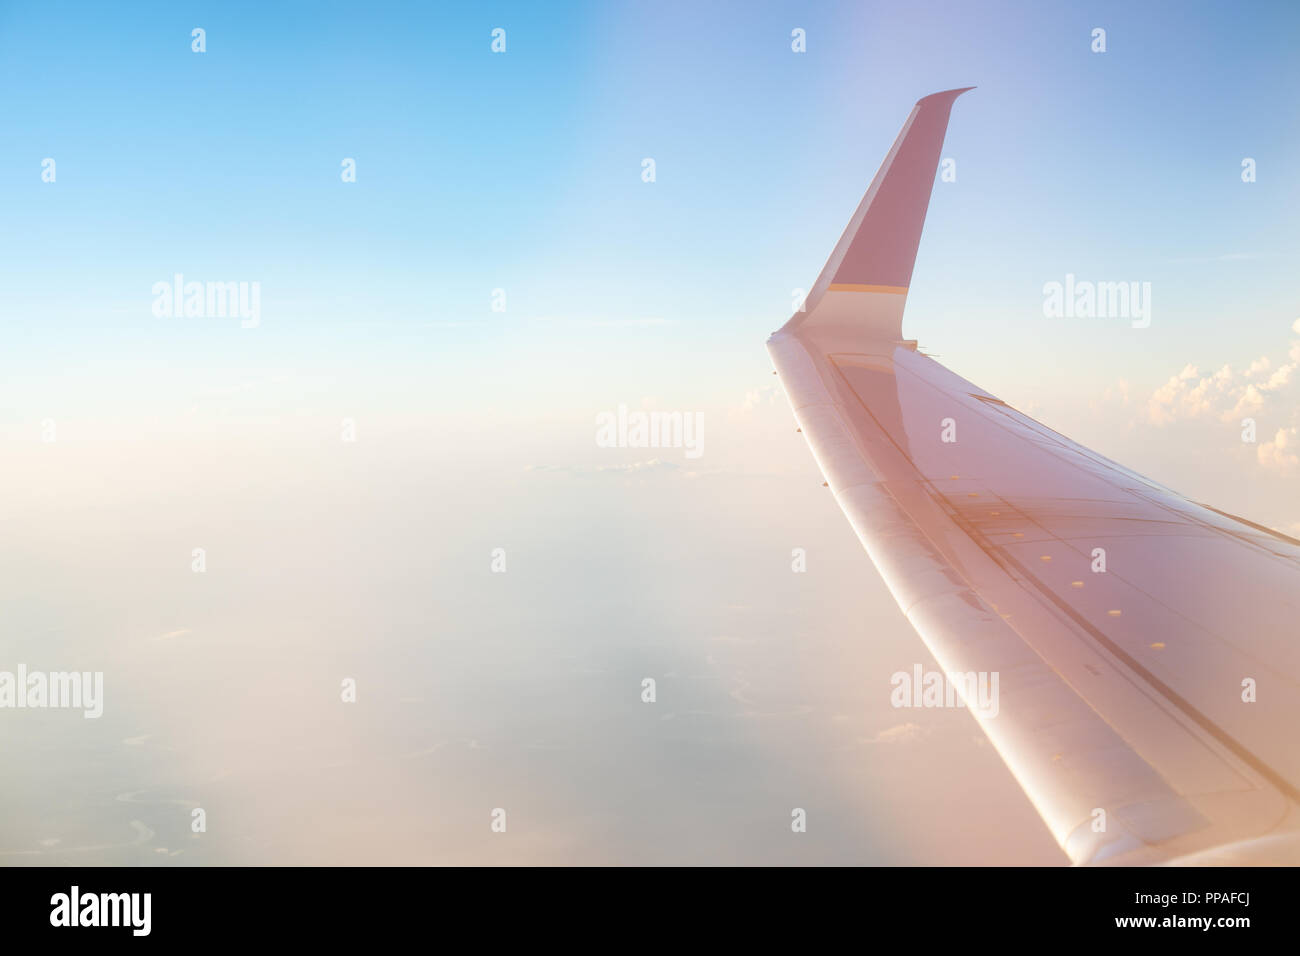 Stunning sunrise view on a high altitude from the passenger window of a conventional airplane. The morning sun colors the sky in pastel colors. - Stock Image